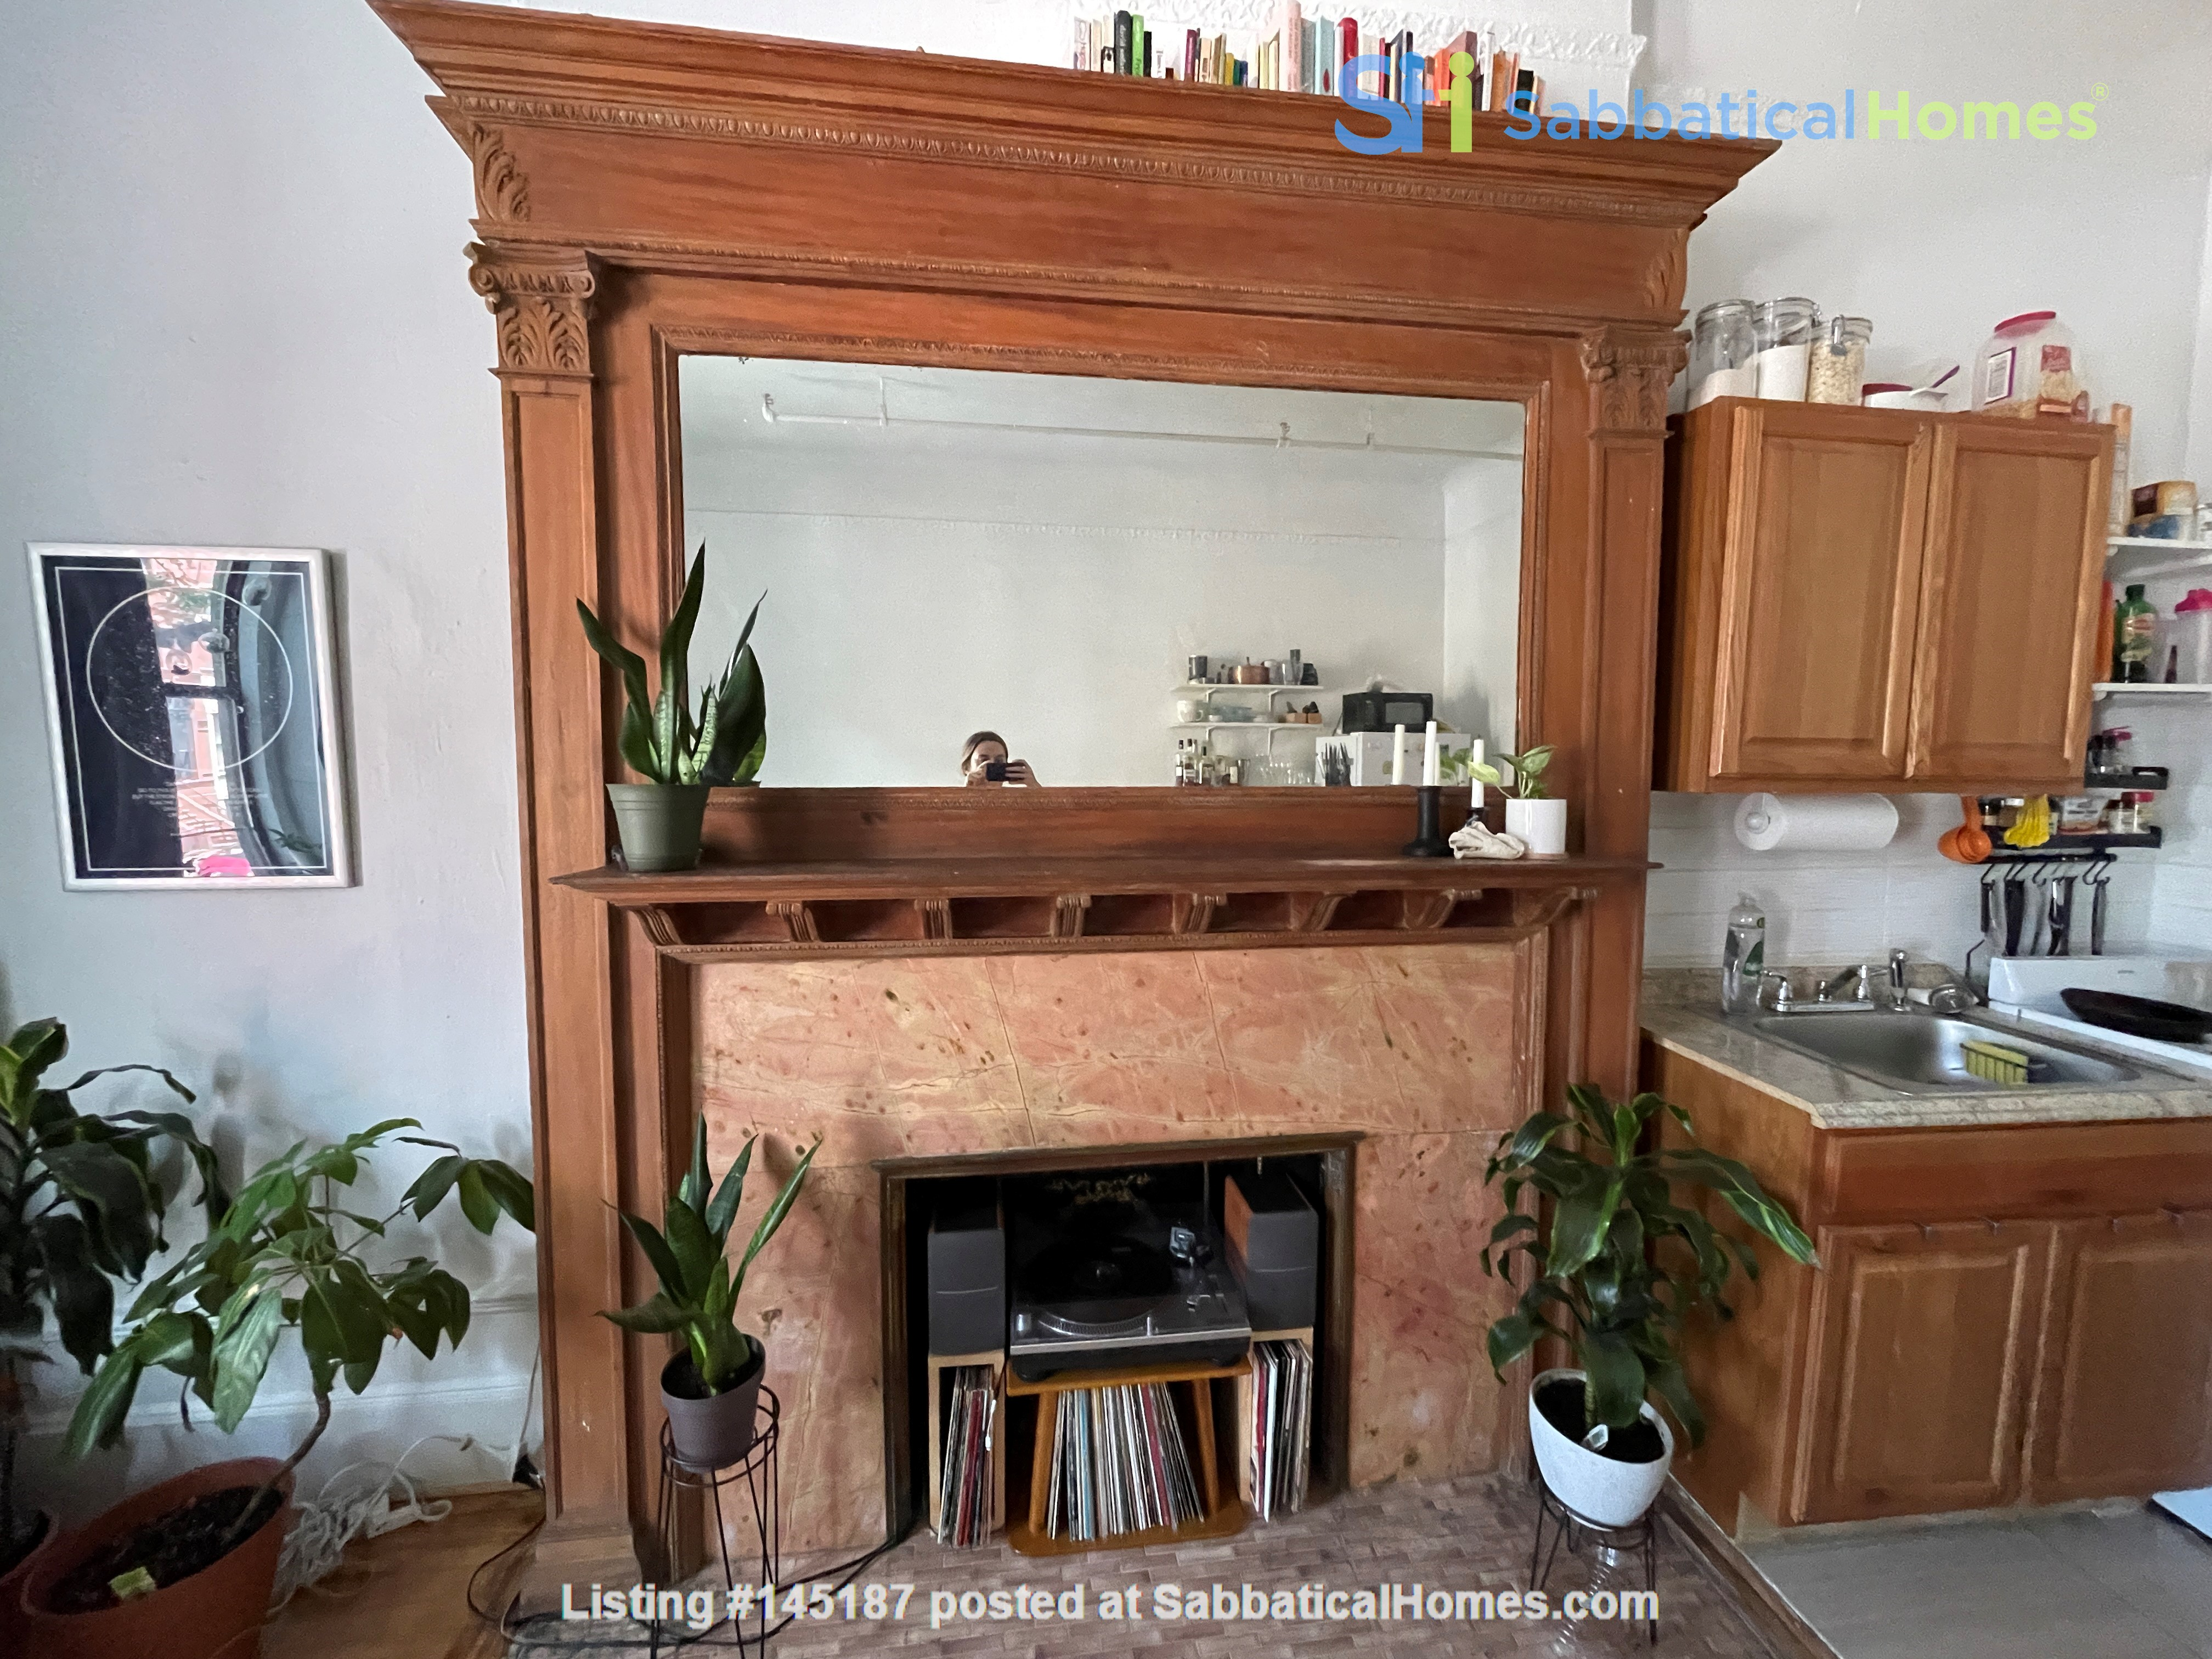 Historic South Harlem Studio with Balcony, short walk to Central Park! Home Rental in New York 4